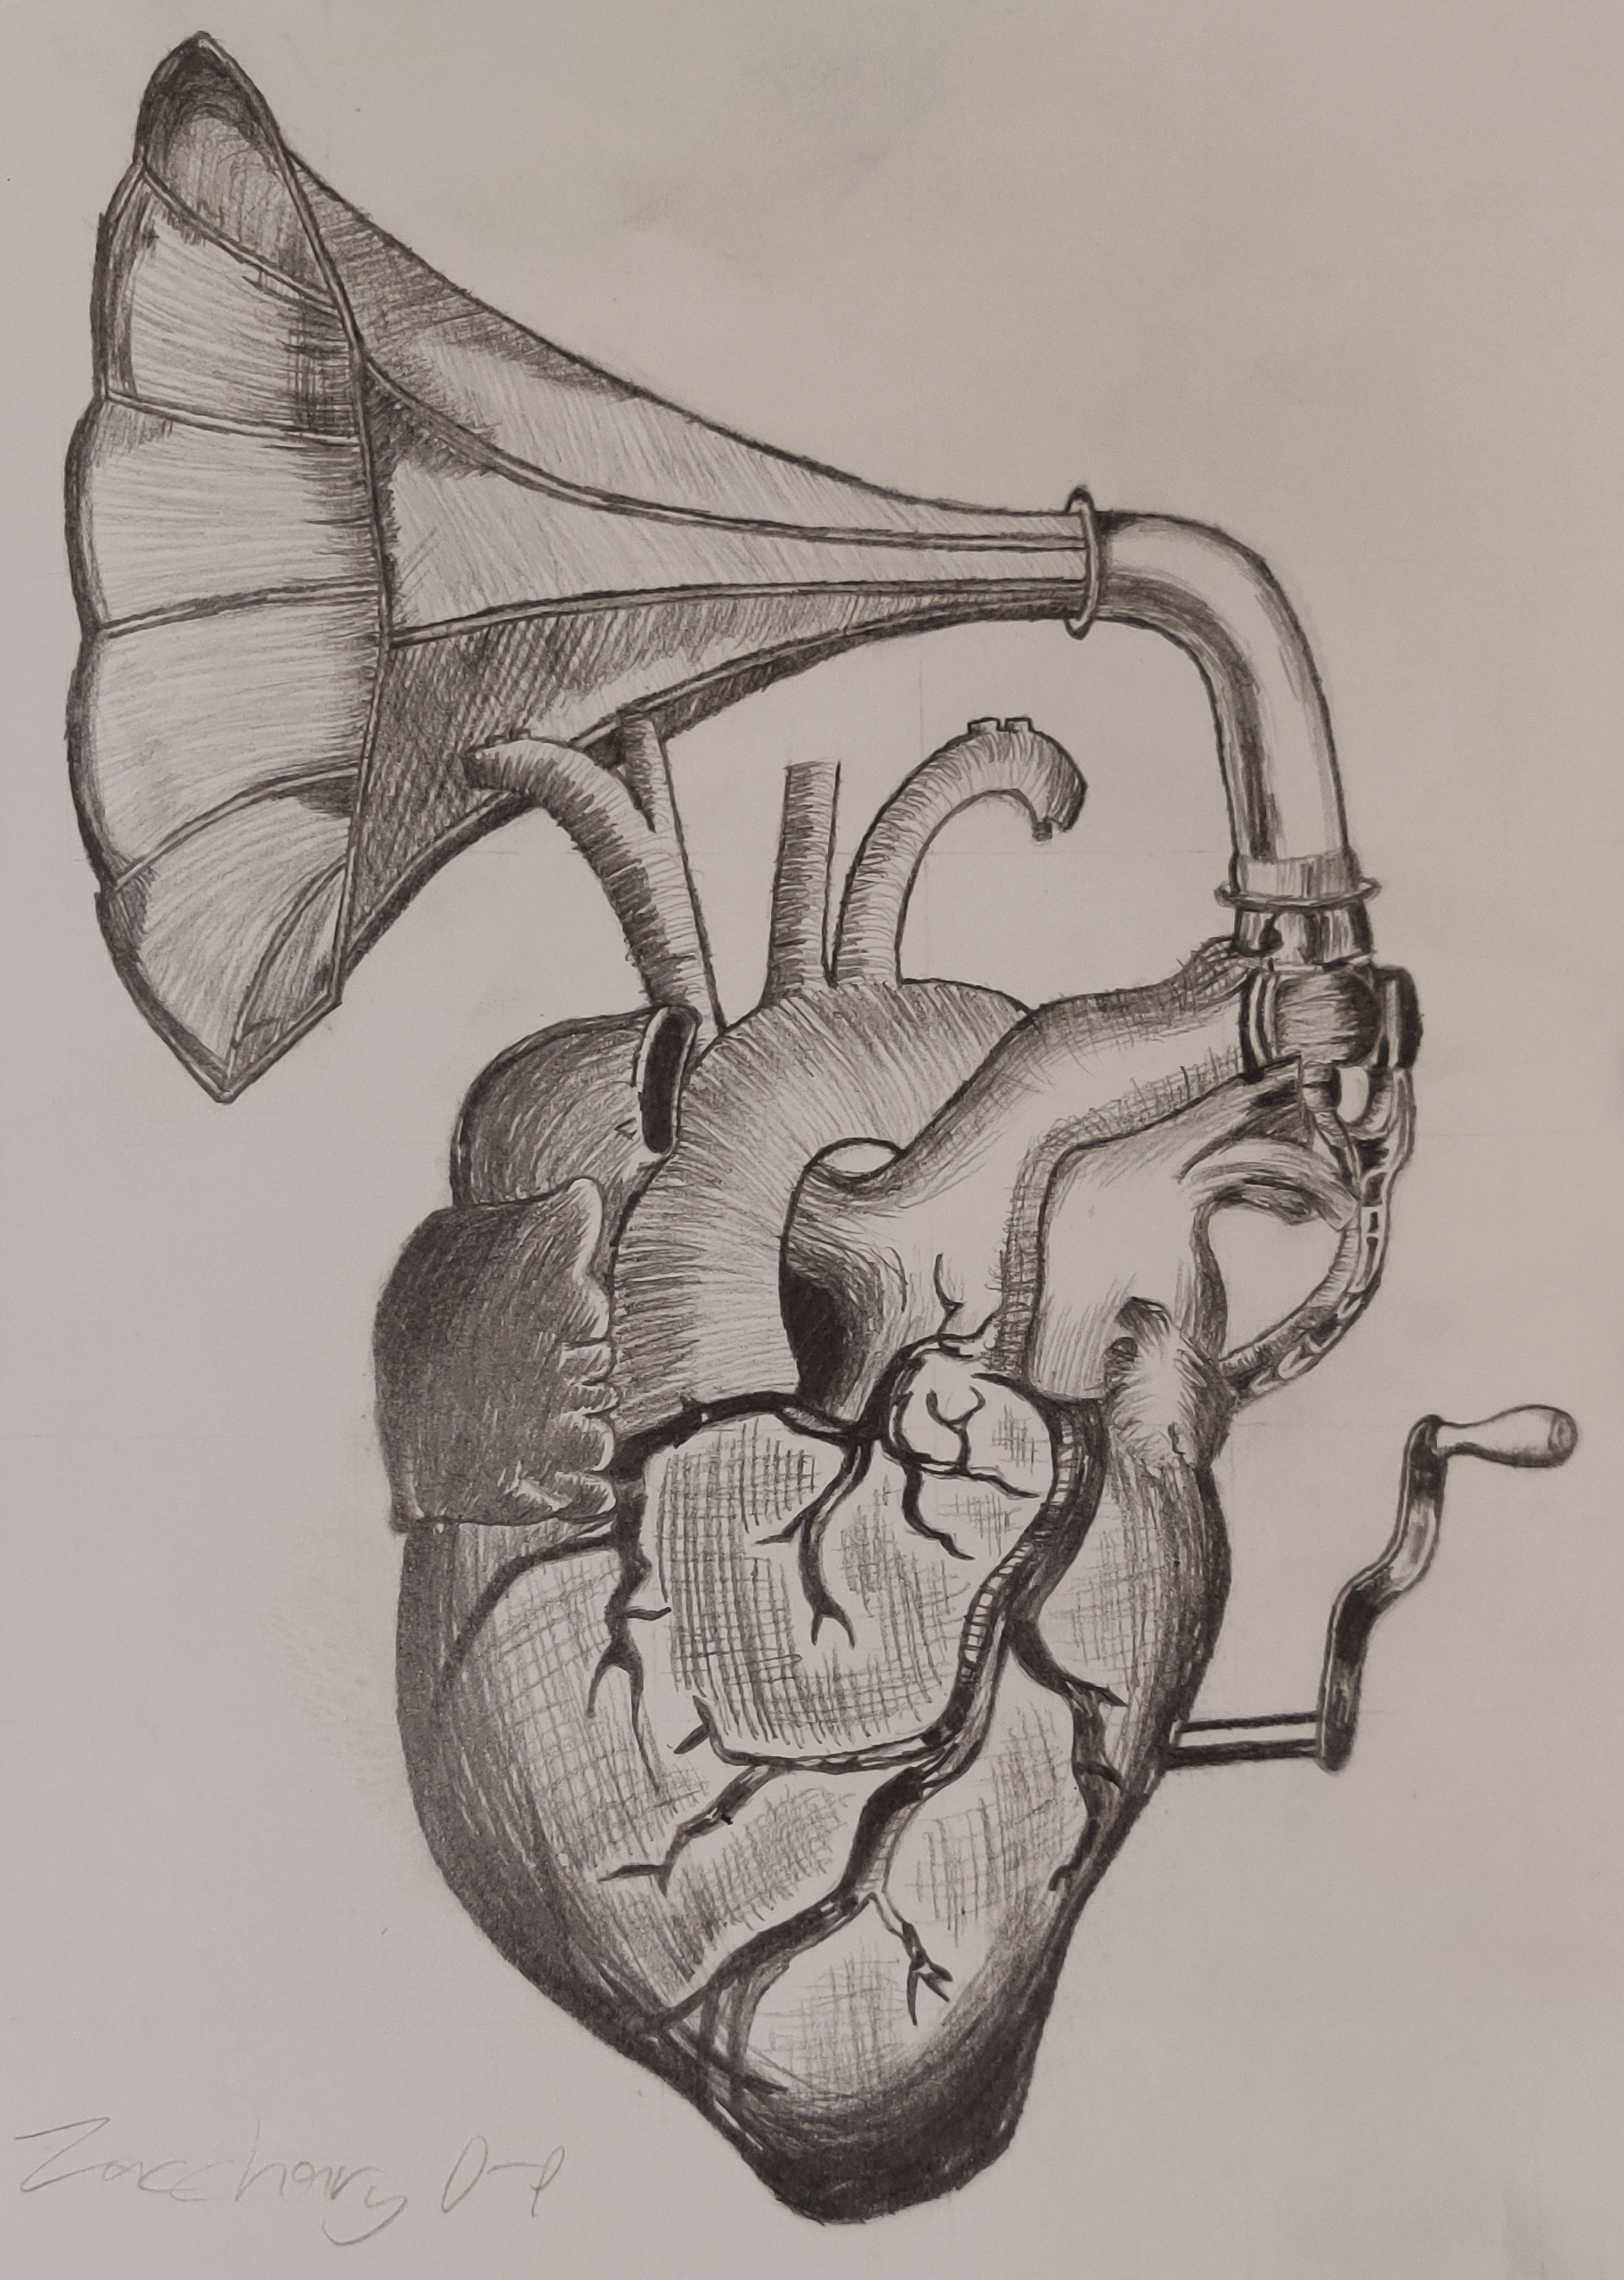 A hatching drawing of a heart with a gramophone horn coming from the top.